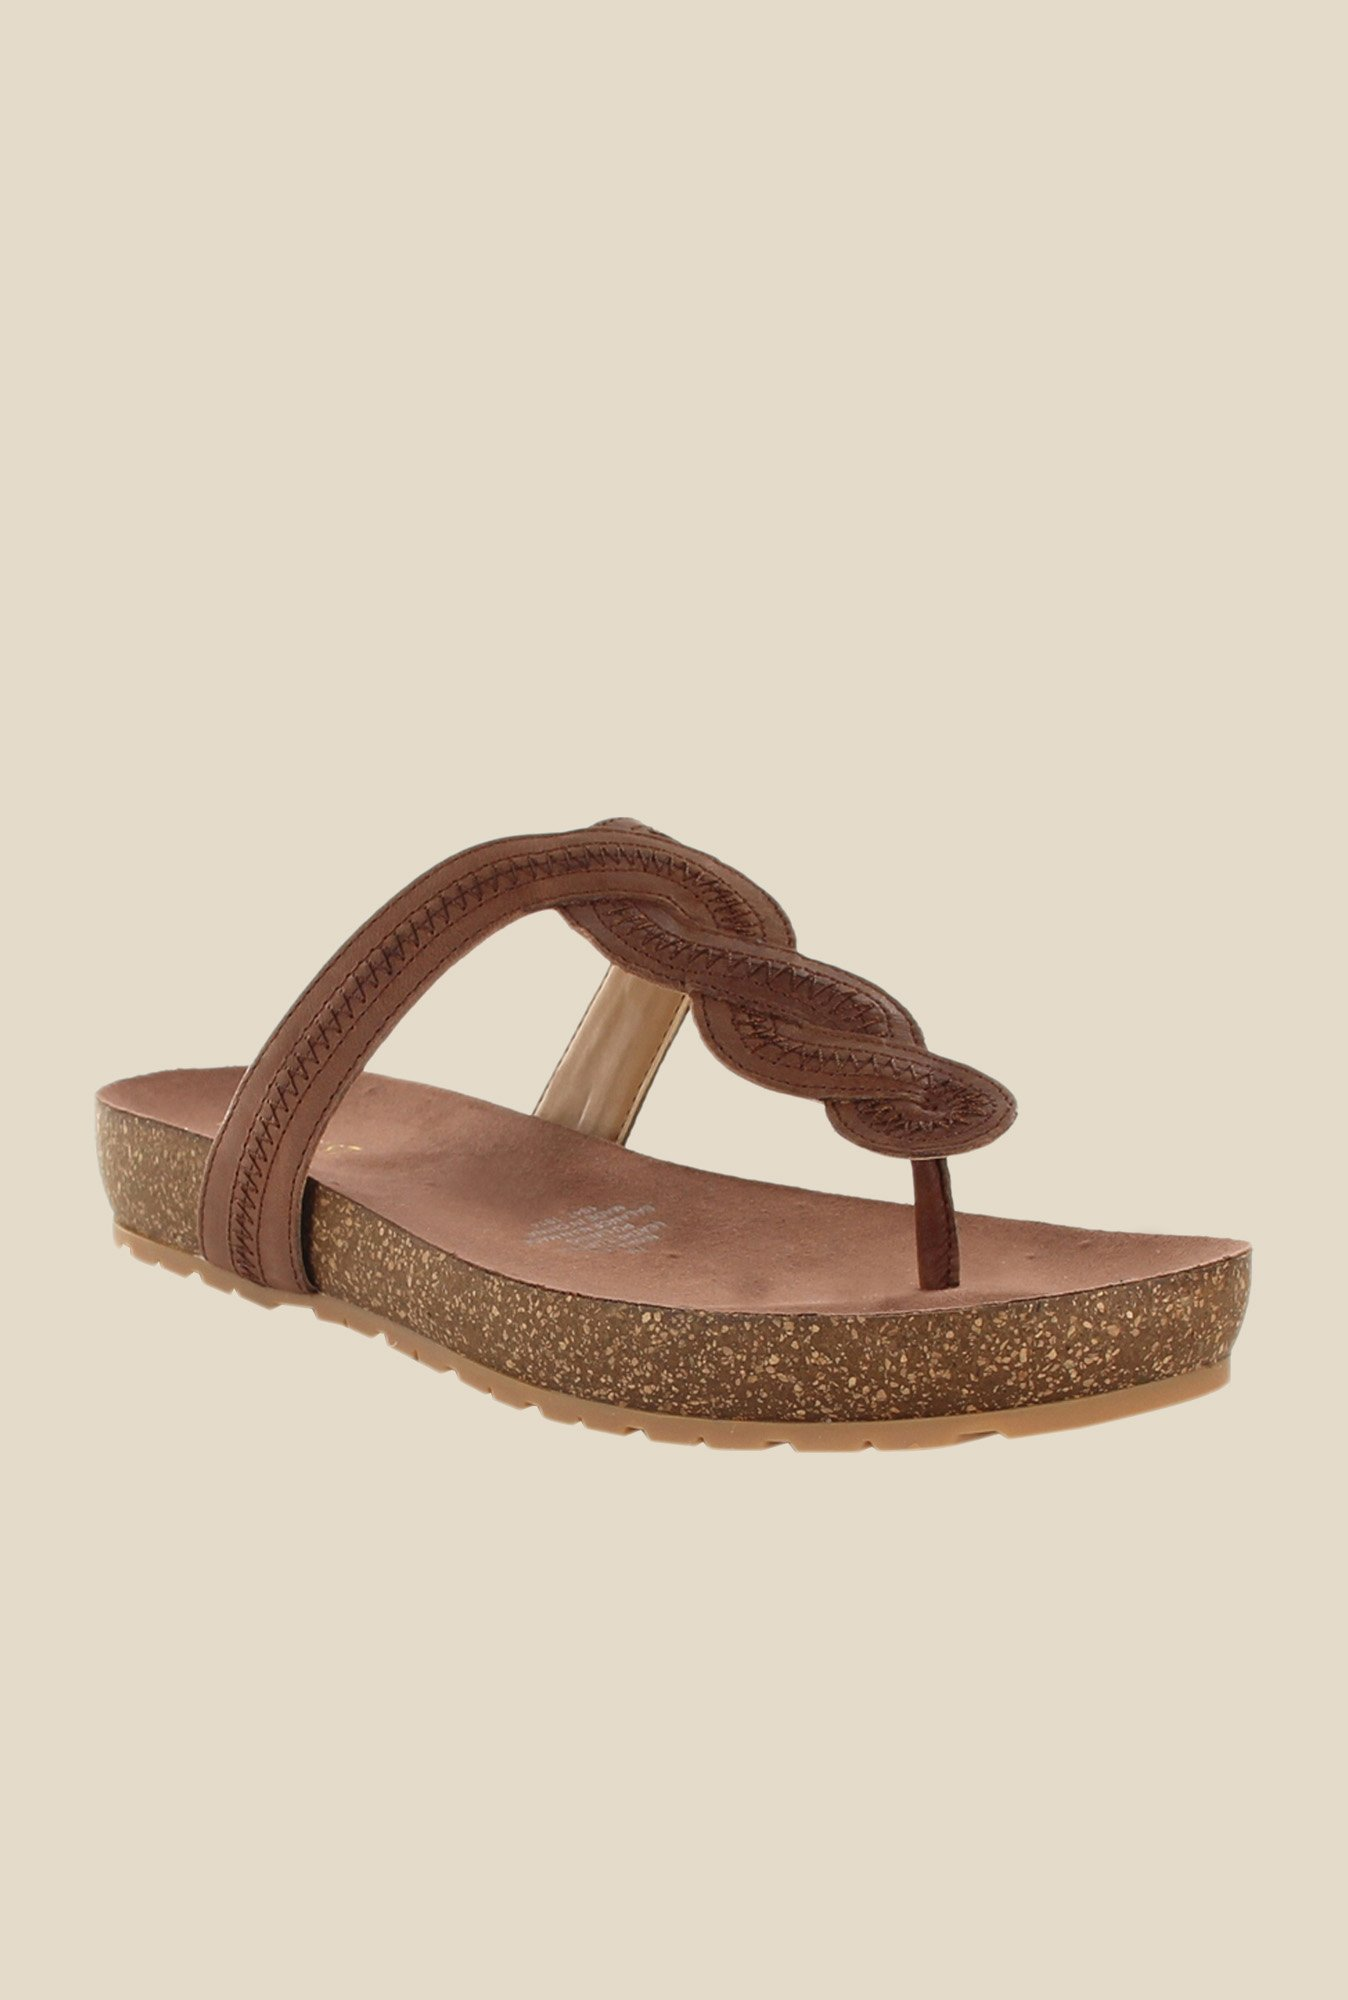 Nine West Brown T-Strap Sandals